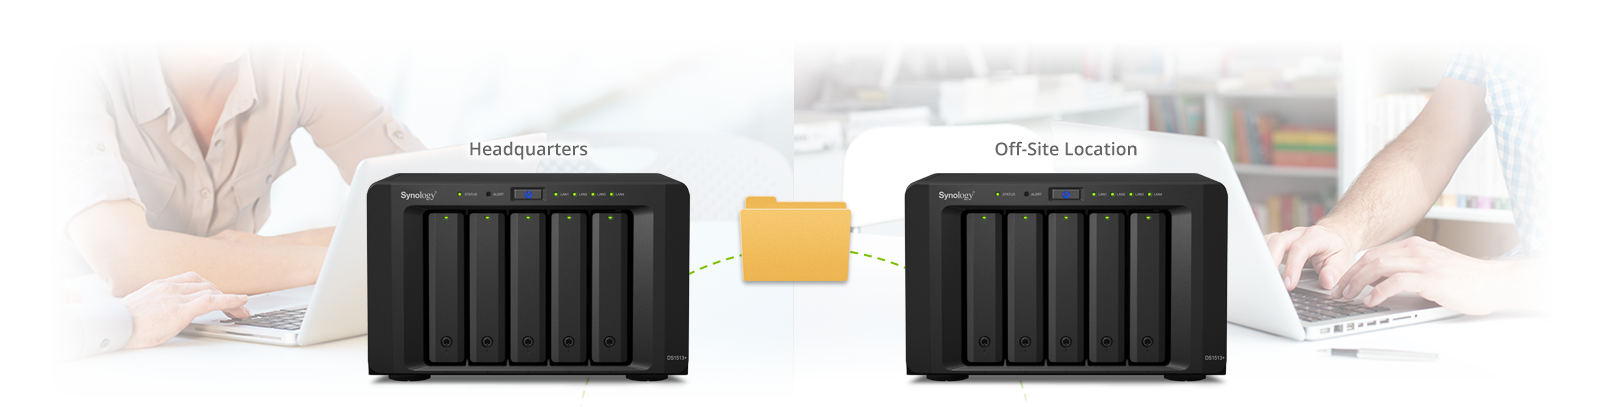 location_01_backup_data_server_pc_sao_luu_du_lieu_nas_synology